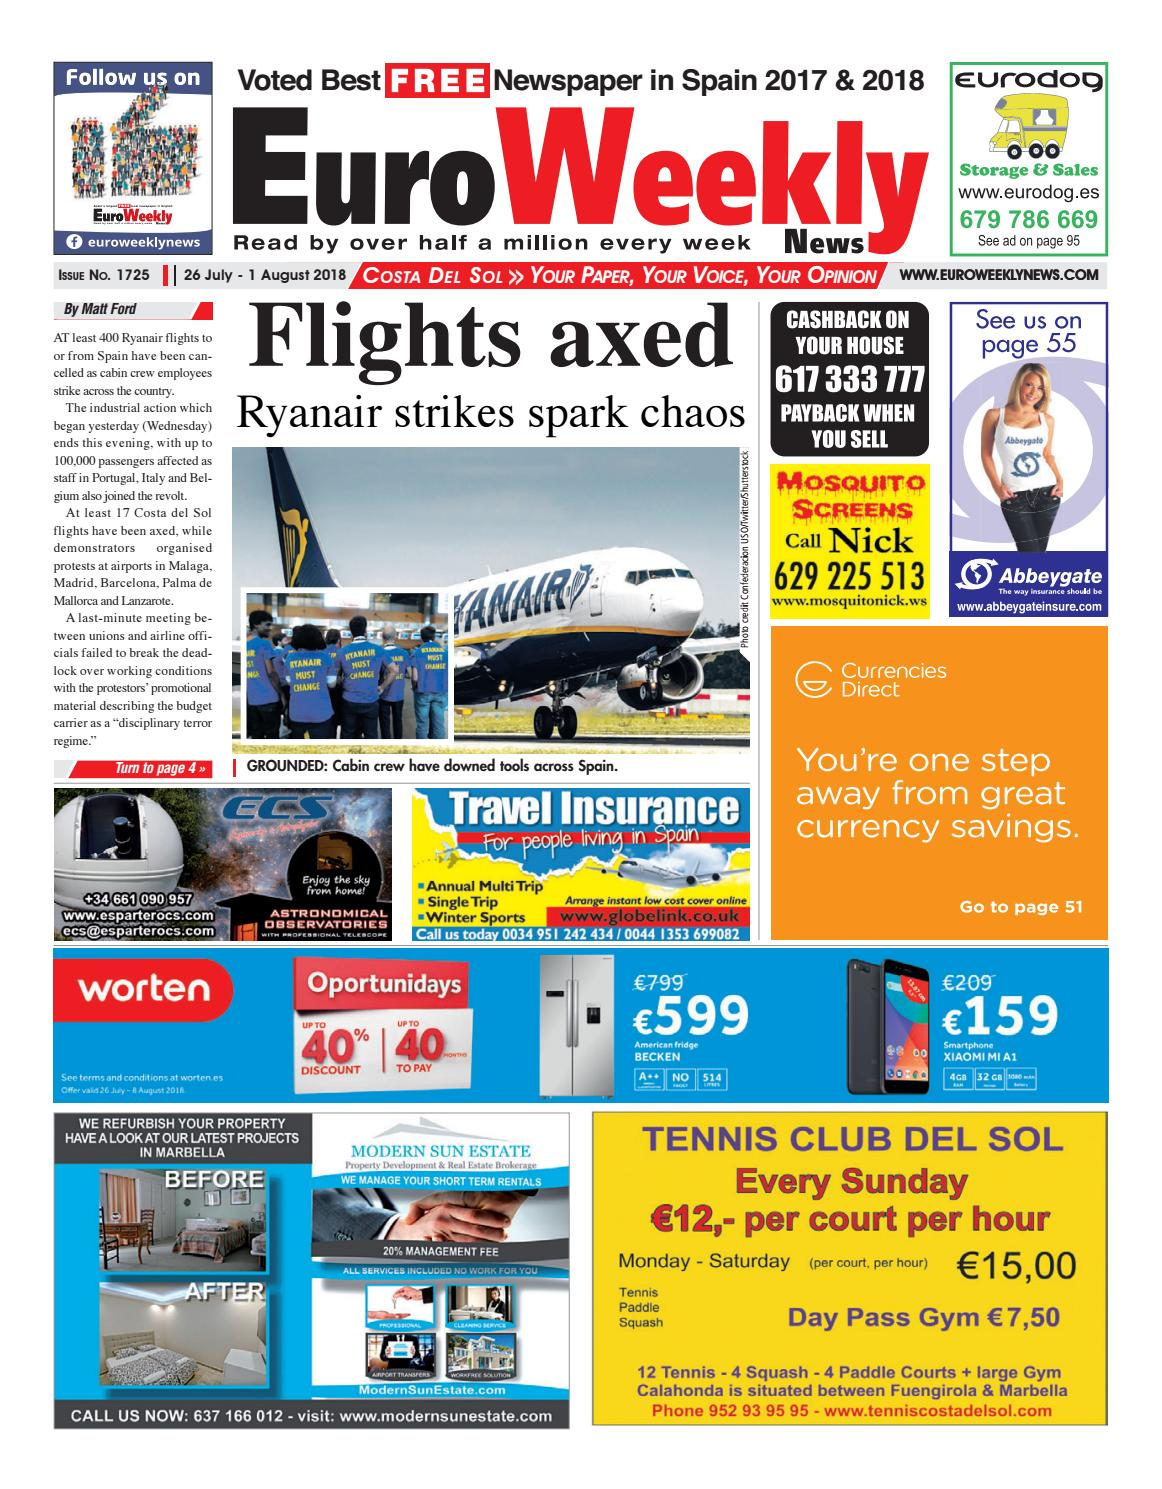 Euro Weekly News - Costa del Sol 26 July - 1 August 2018 Issue 1725